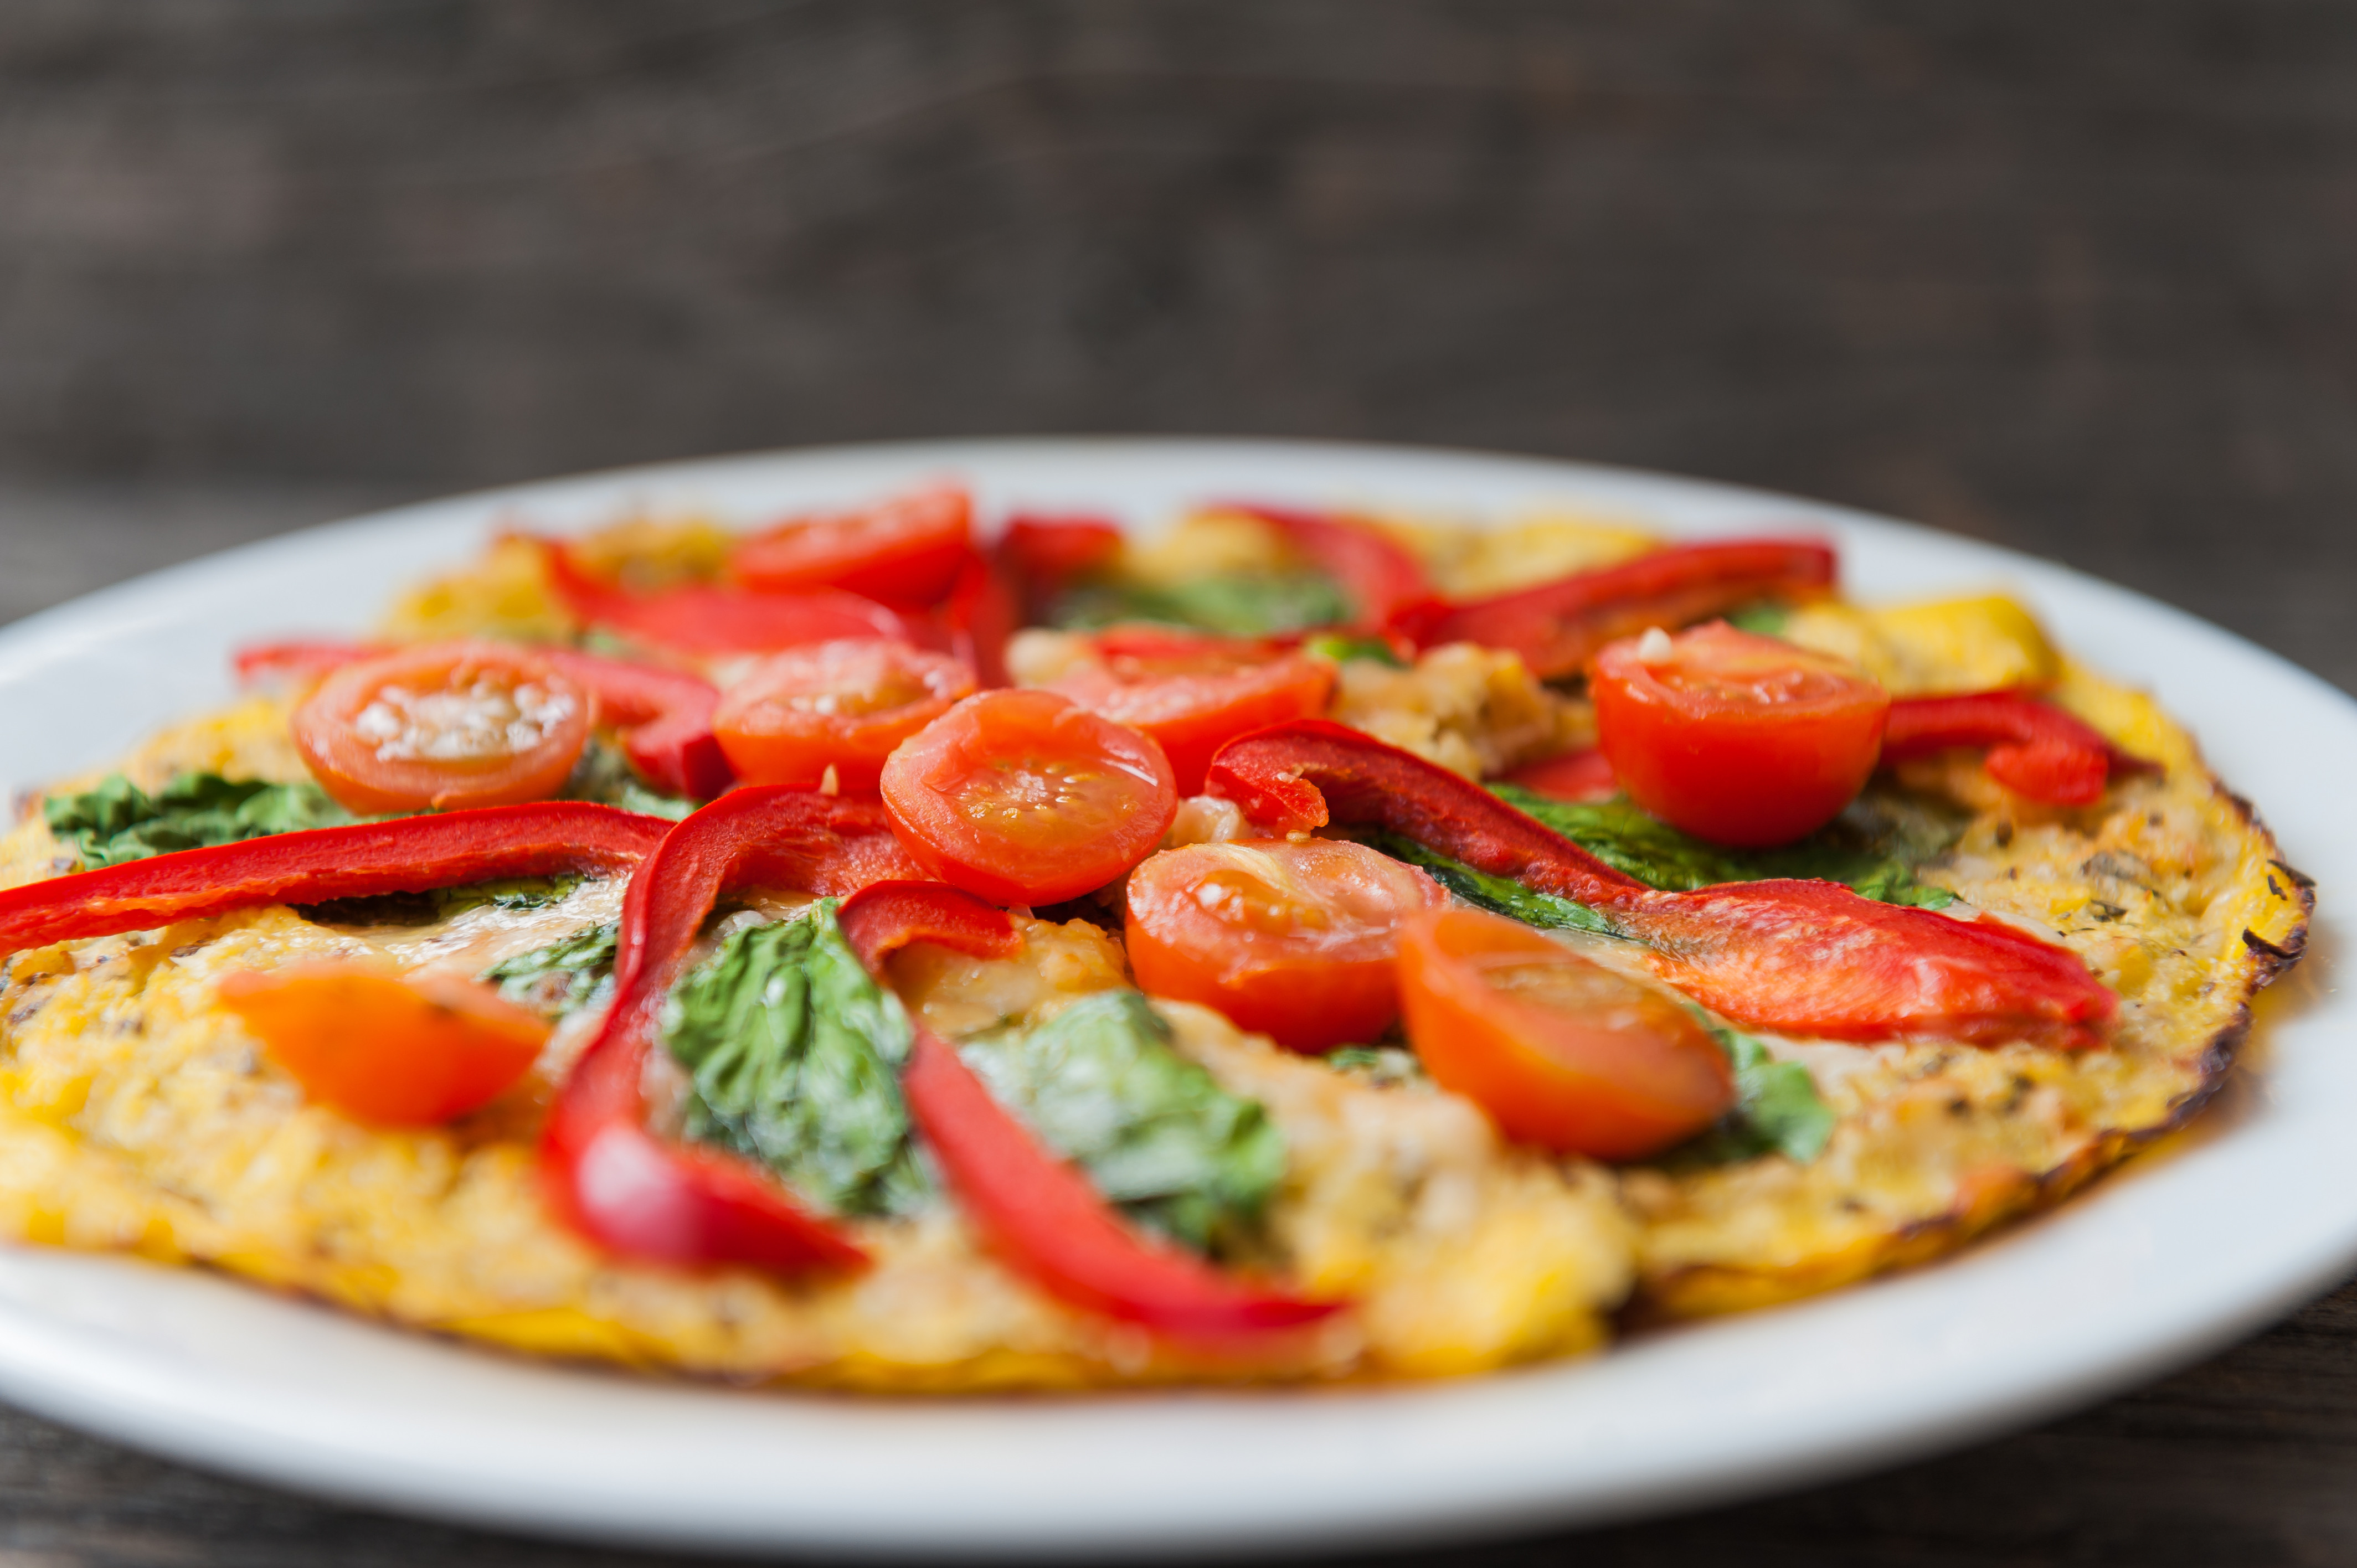 Healthy Low Cal Dinners  27 Delicious Low Calorie Meals That Fill You Up Get